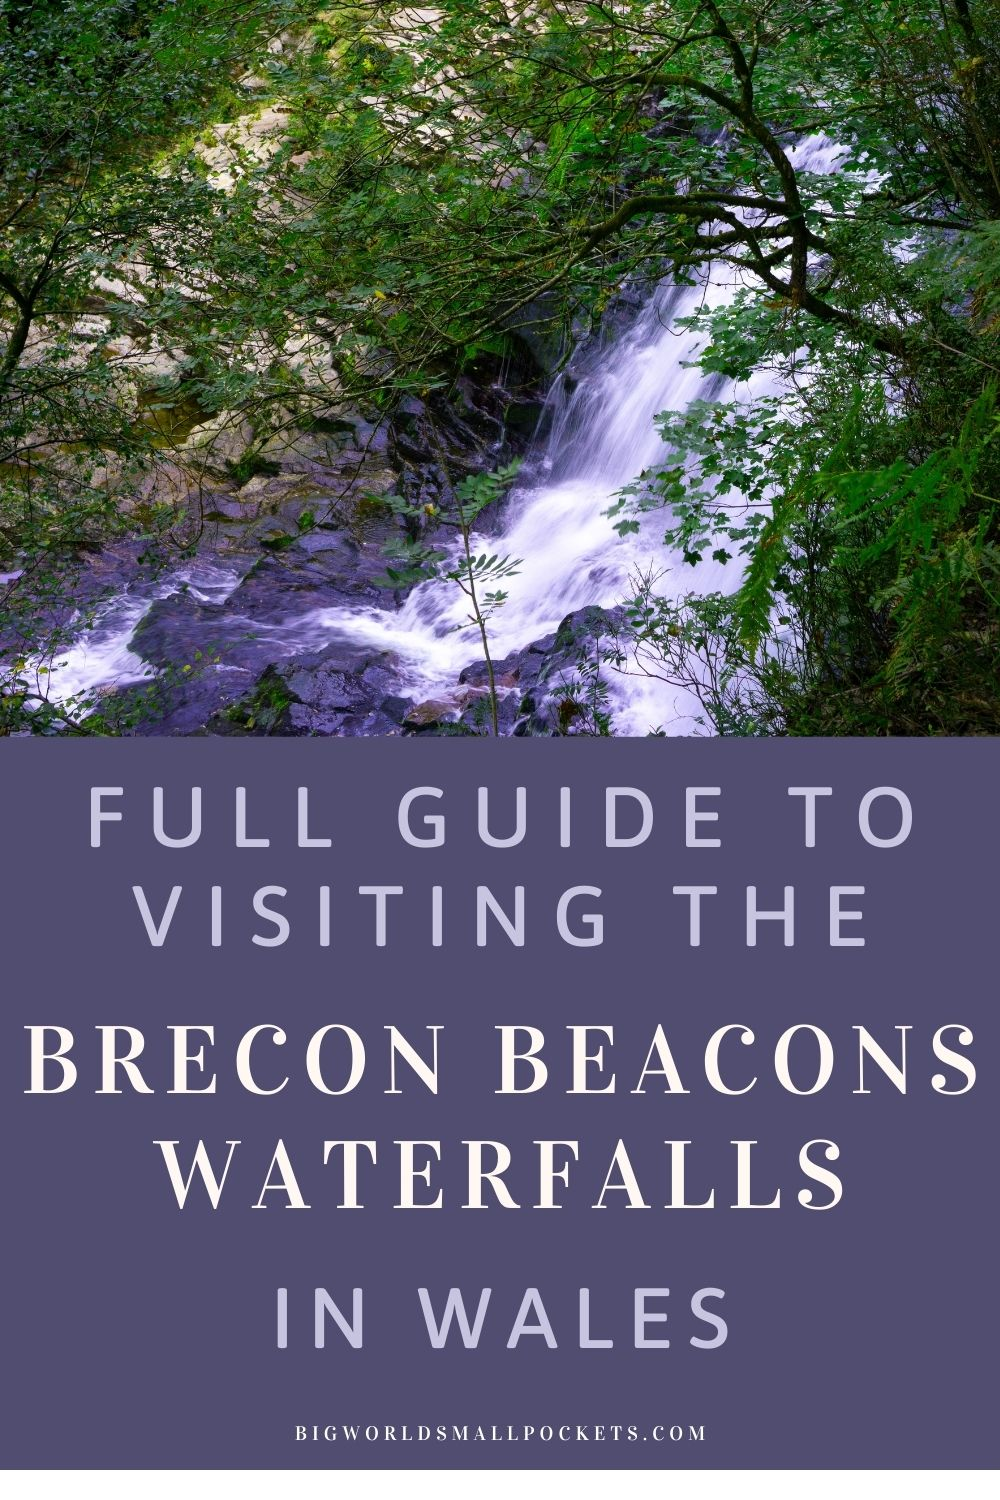 Ultimate Guide to Visiting the Brecon Beacons Waterfalls, Wales